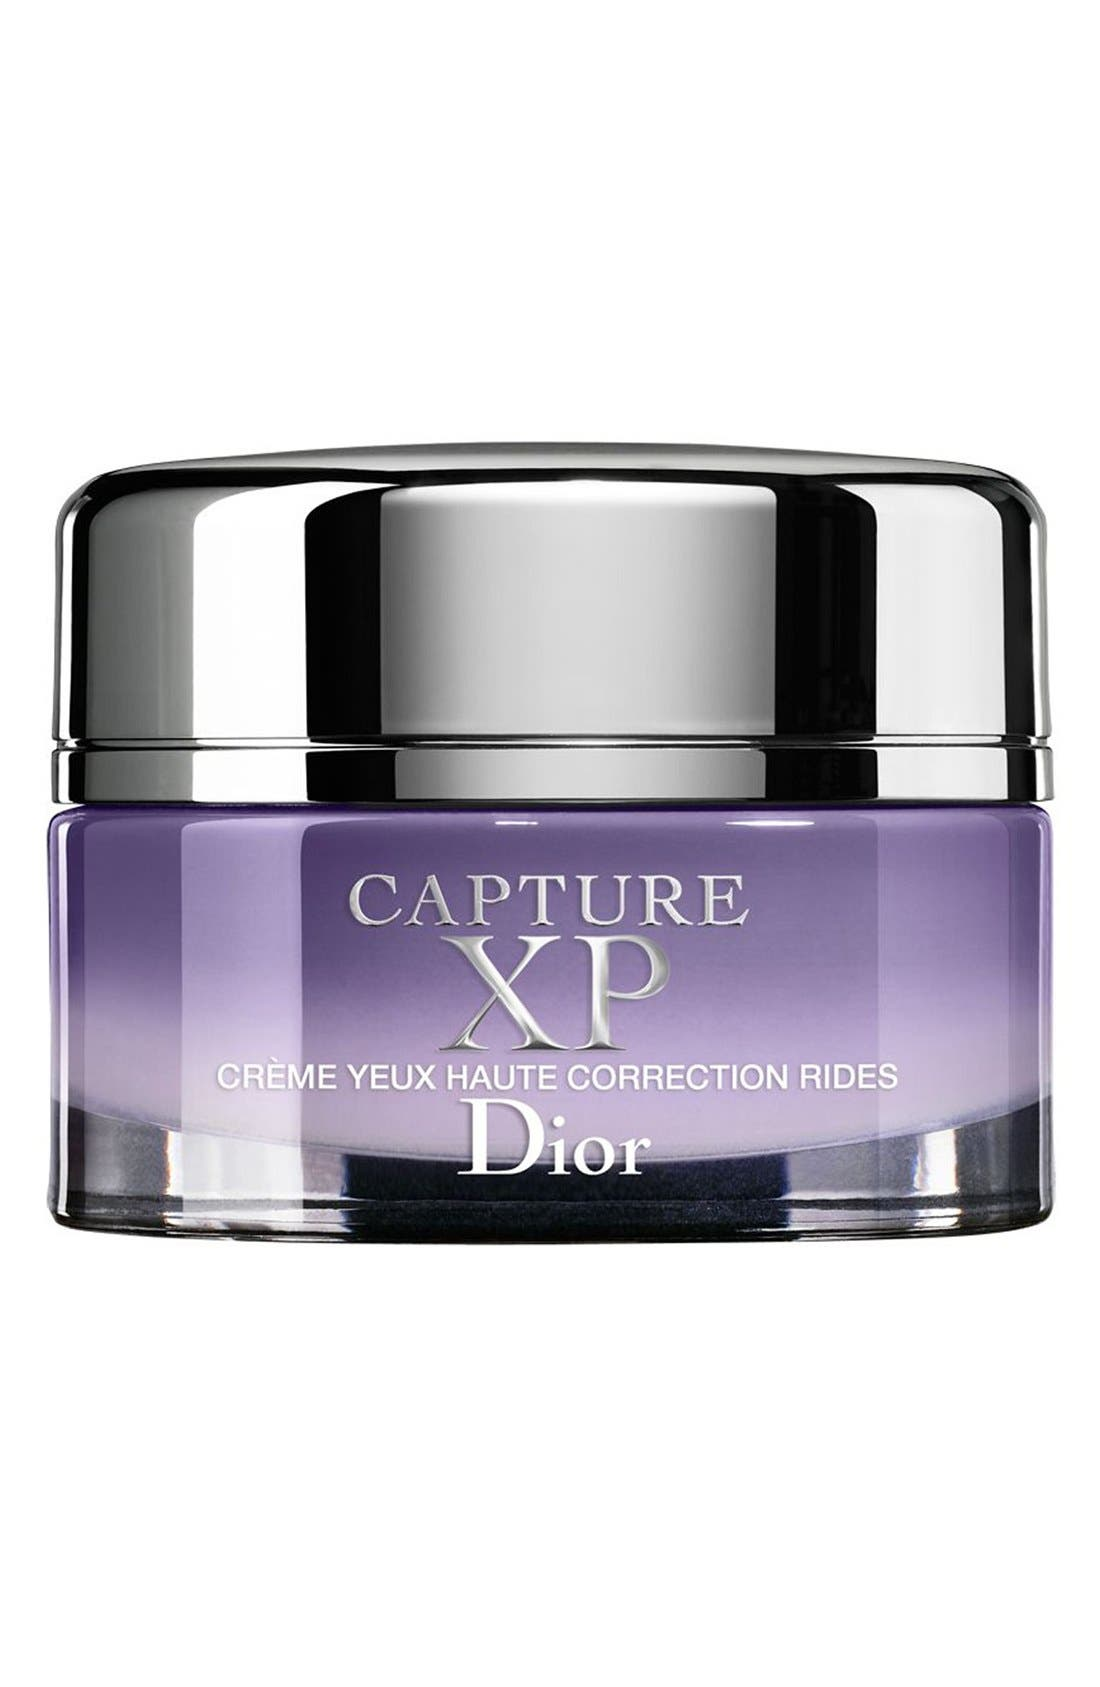 Dior 'Capture XP Ultimate' Wrinkle Correction Eye Crème